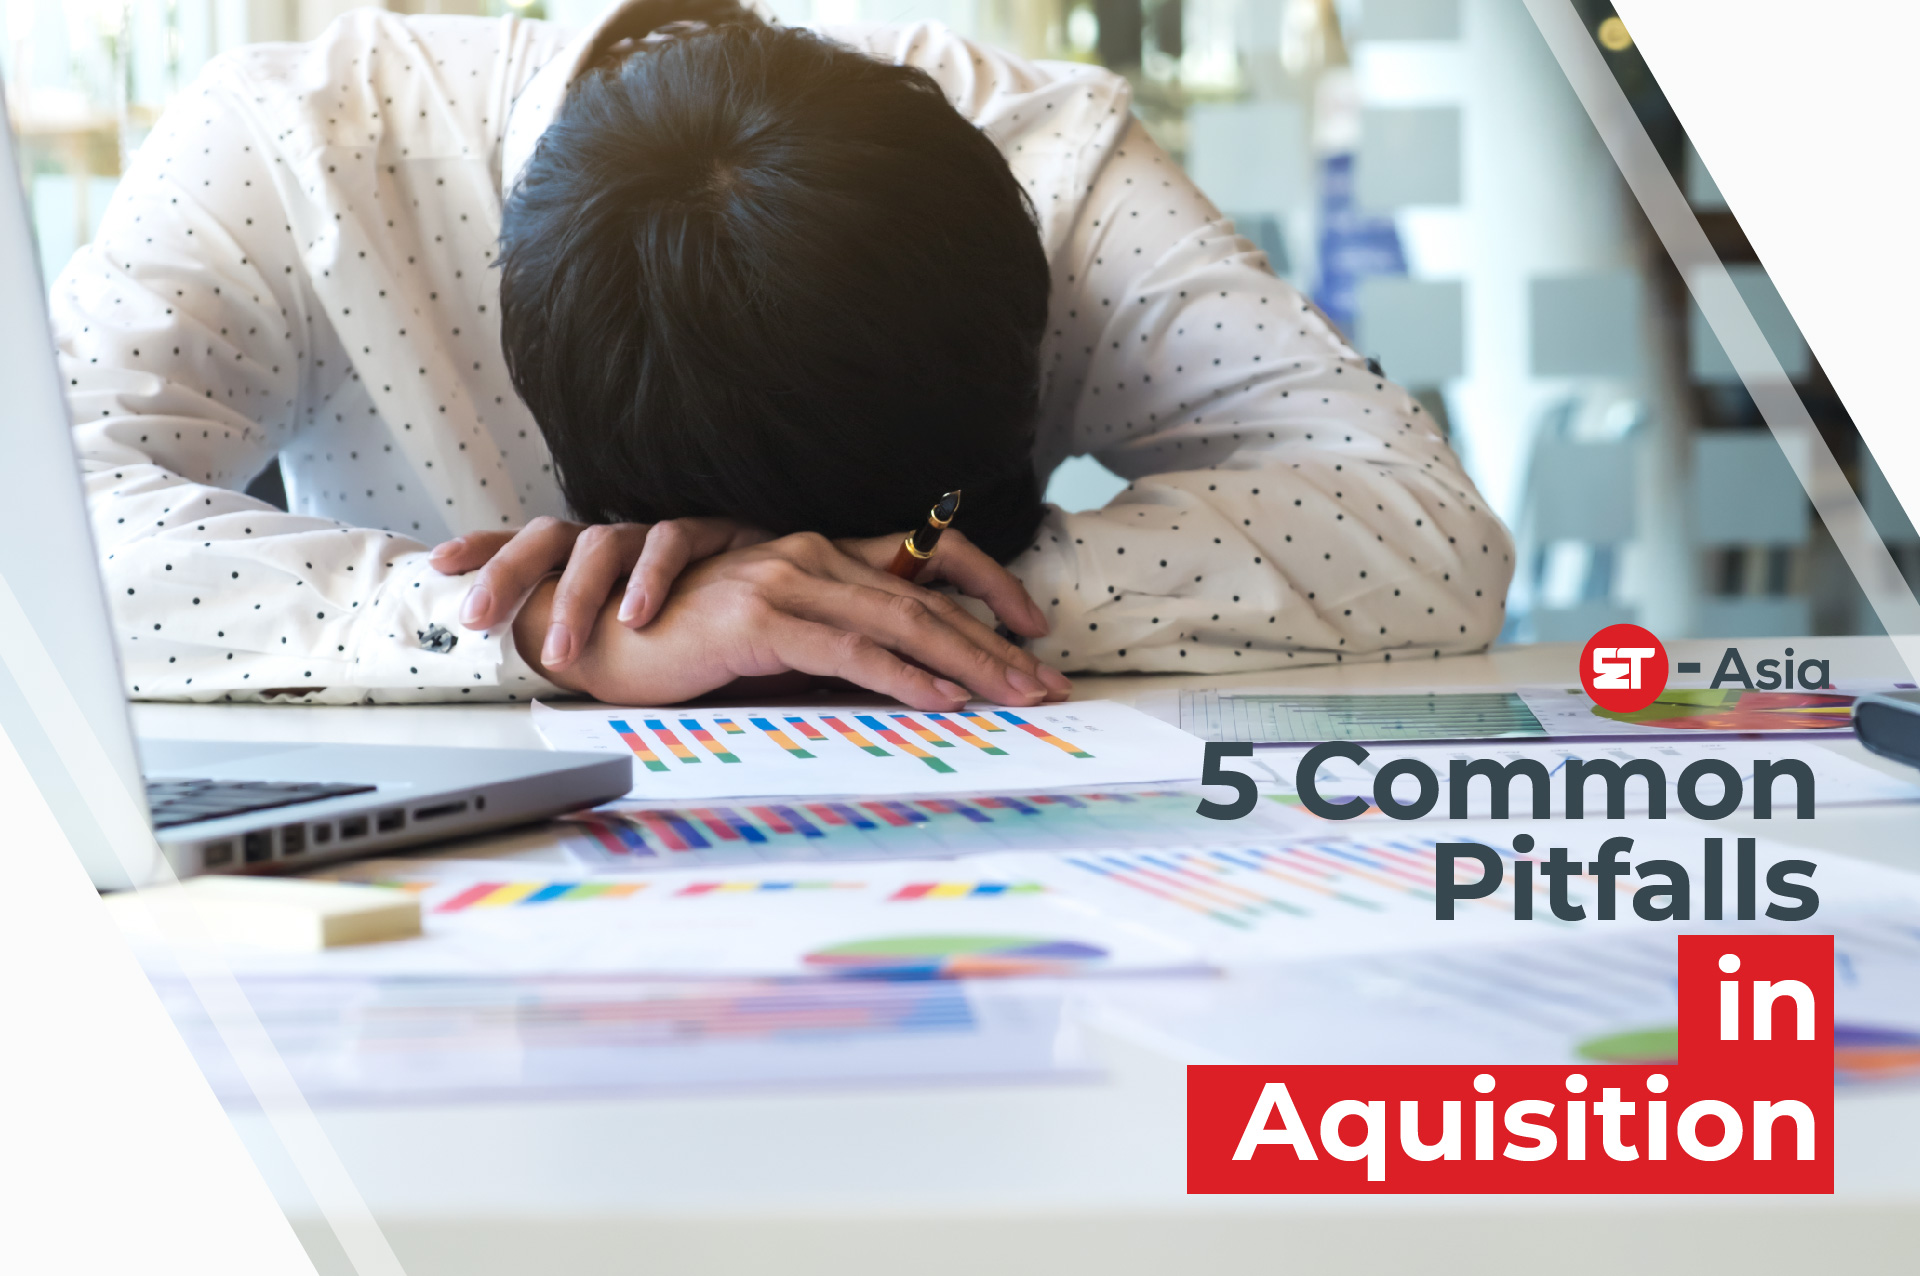 5 Common Pitfalls in Acquisition